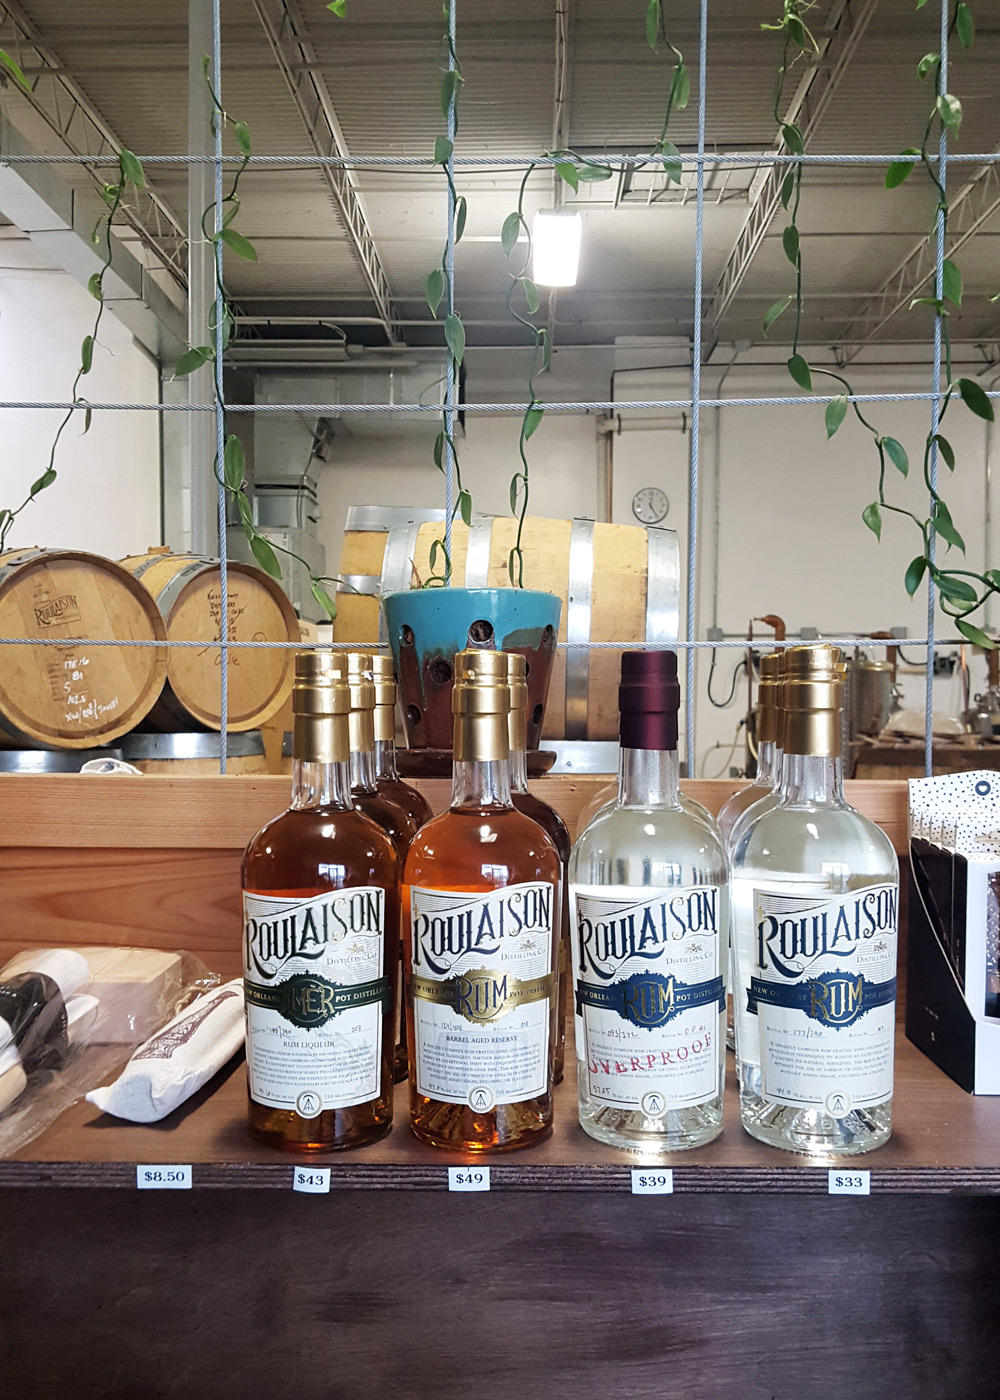 Roulaison Distilling: Creative Craft Rum Native To New Orleans